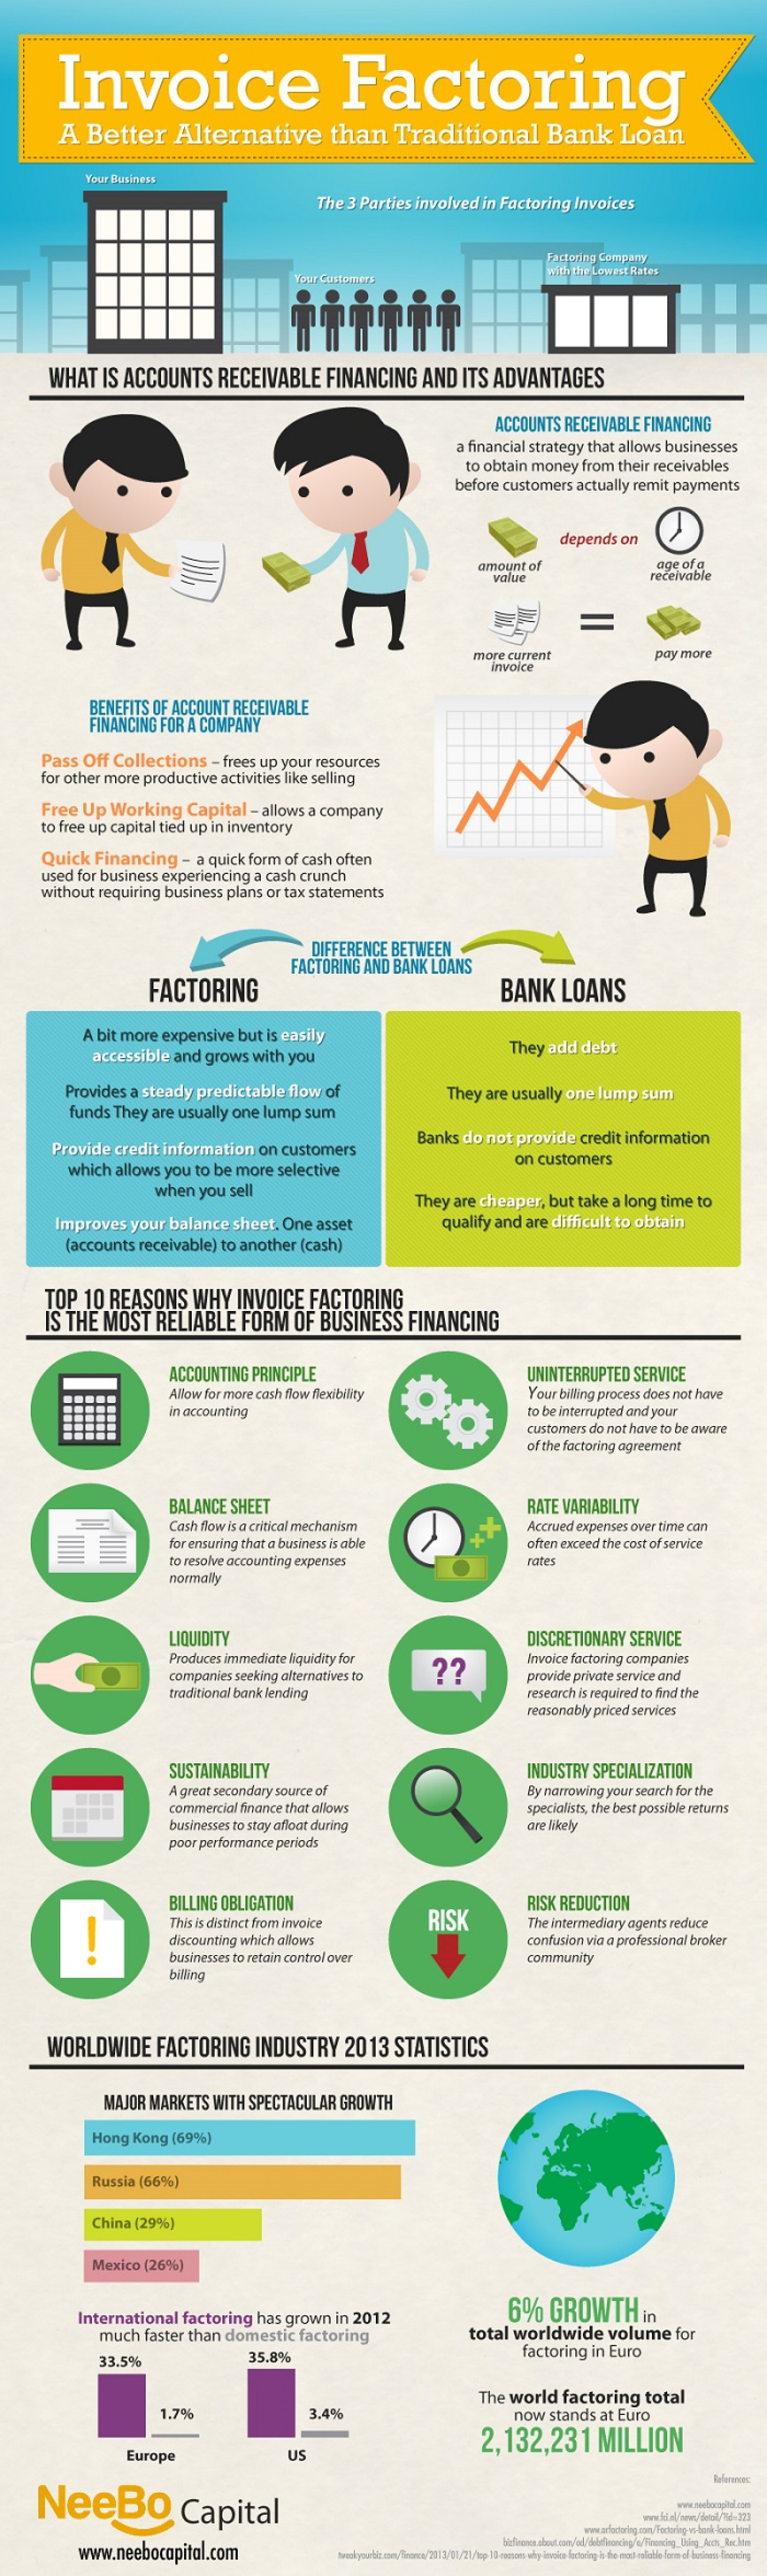 Invoice Factoring: A Better Alternative Than Traditional Bank Loan Infographic